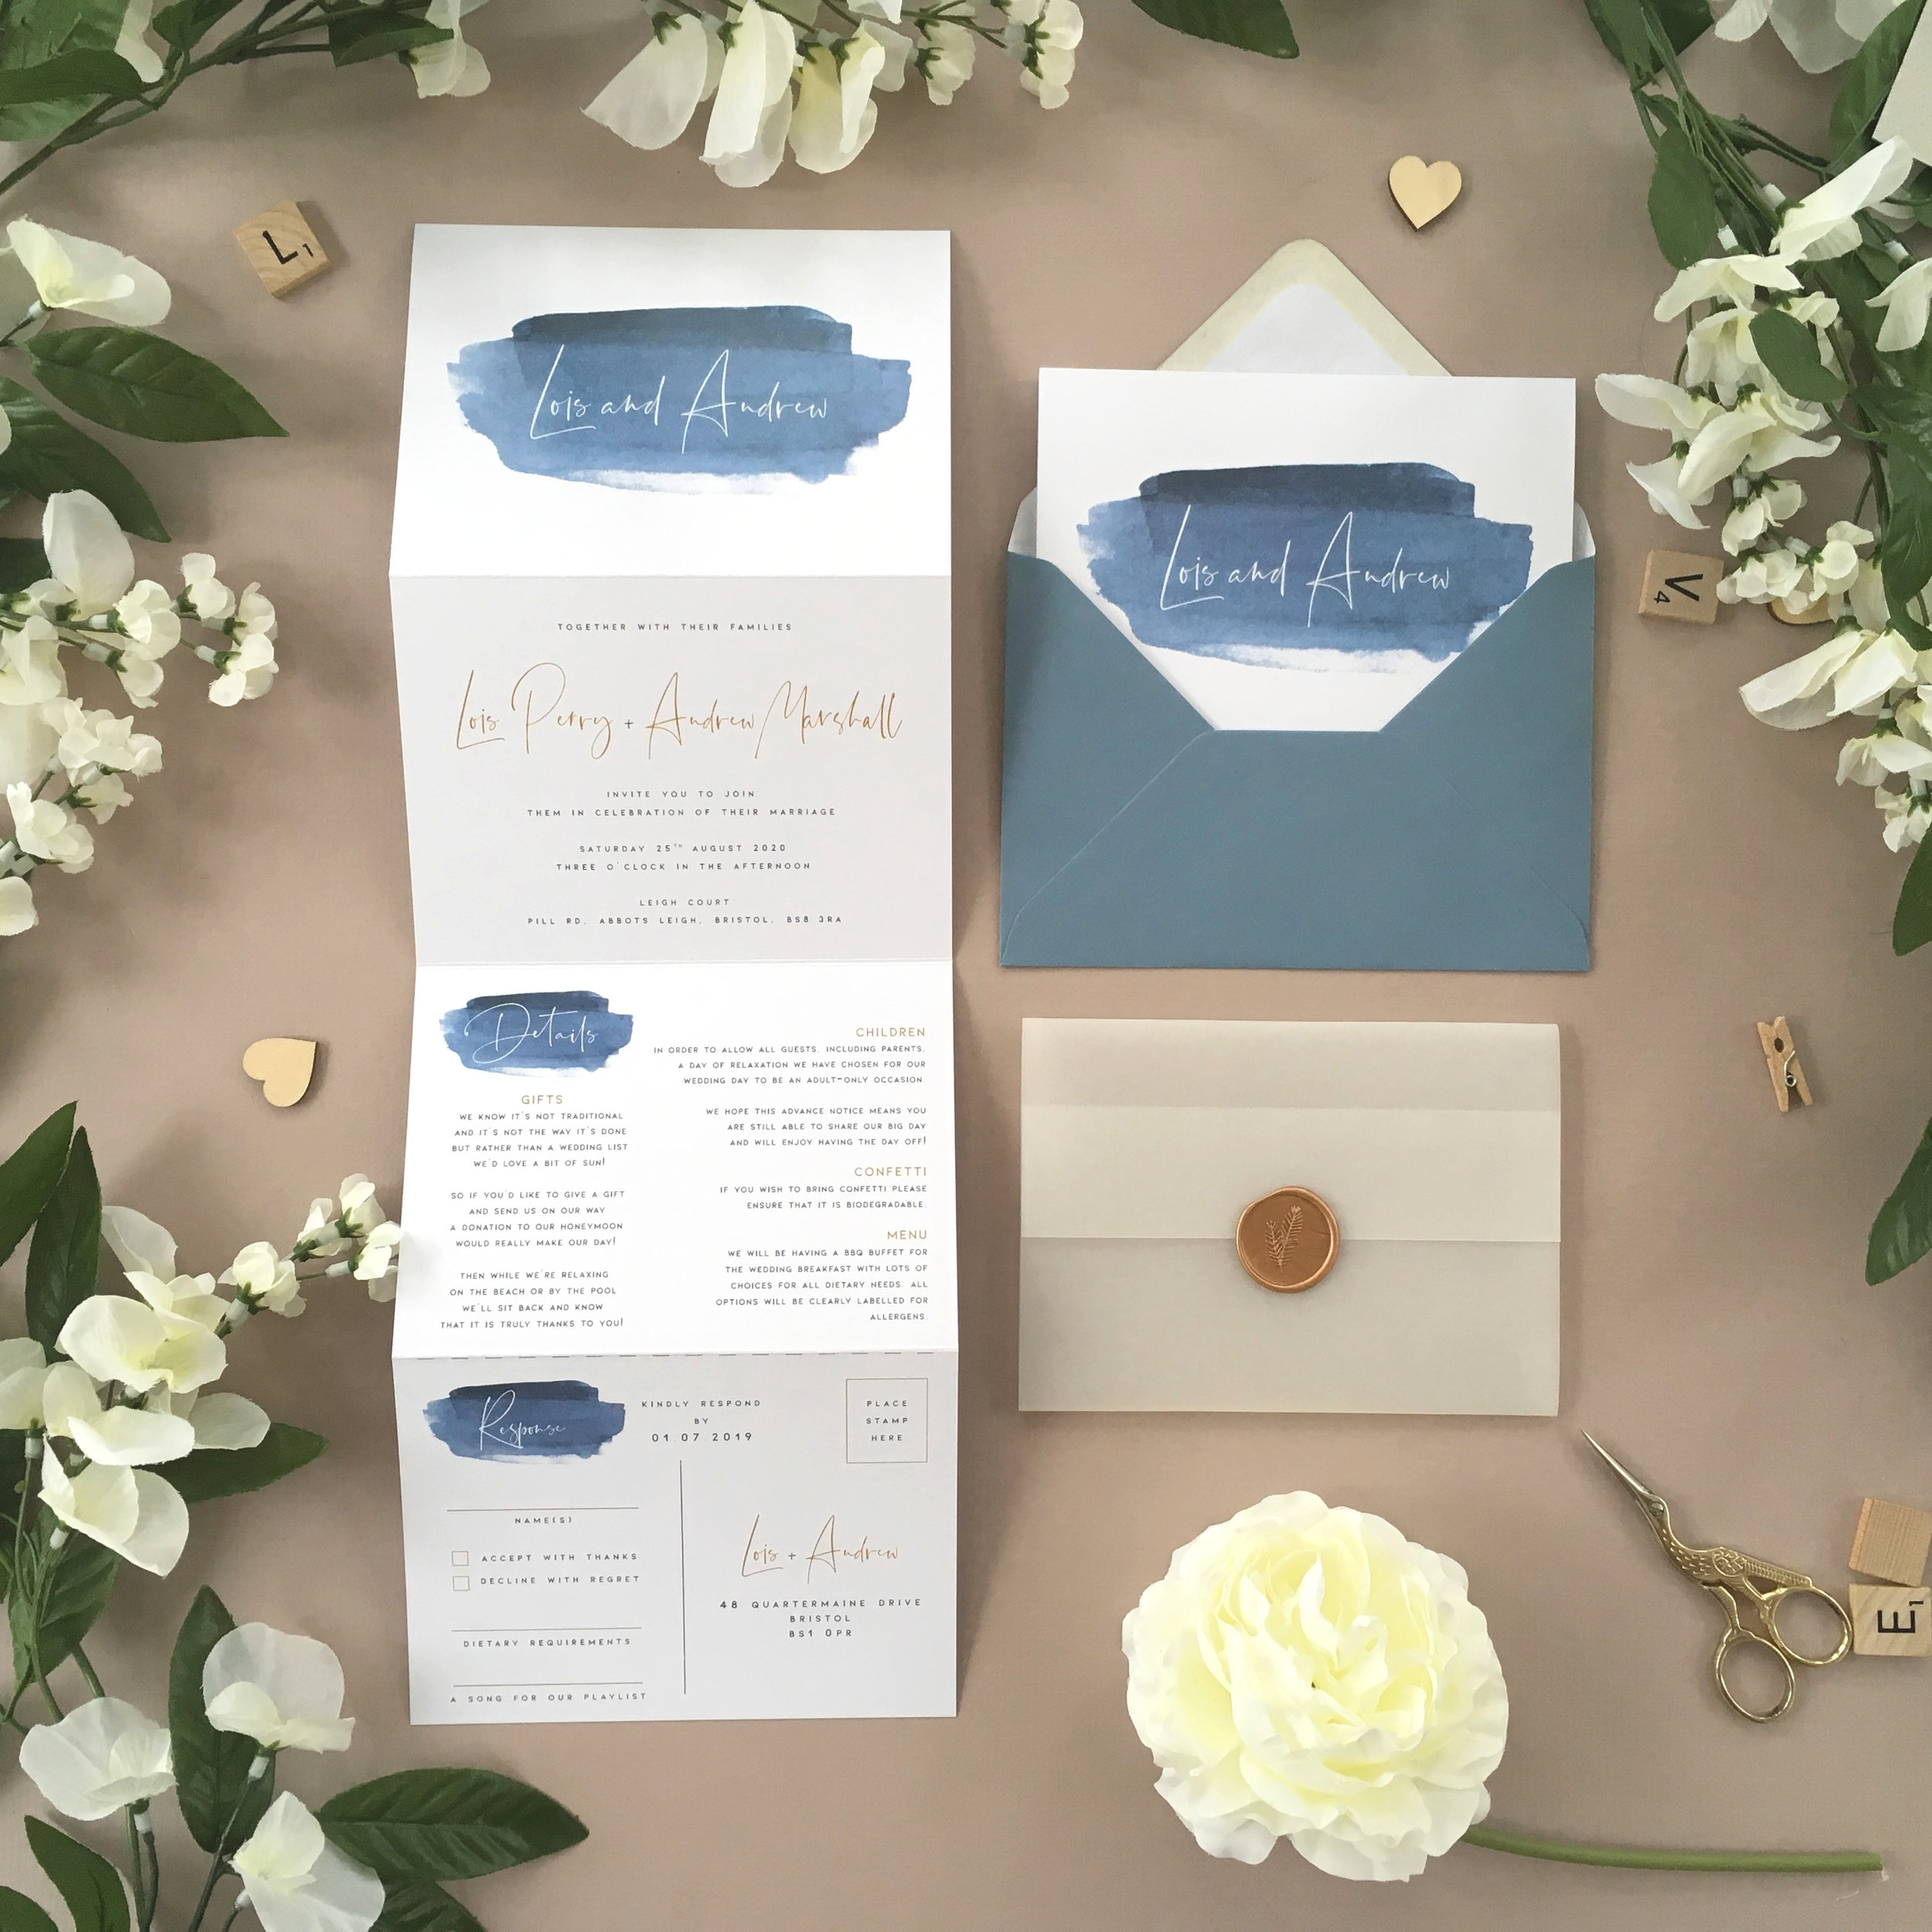 Greenwich - Our new Greenwich collection uses beautiful blue watercolour artwork alongside stylised typography for a contemporary, elegant design and the use of blue makes this perfect for a beach or destination wedding.Our concertina invitations are a great all-in-one solution, with a detachable RSVP at the bottom of the invitation - all guests need to do is fill in their details, put a stamp in the corner and post!Concertina invitations can be provided on an as-is basis, or can be provided bound with a vellum jacket and timeless wax seal, or tied with ribbon or twine for a lovely hand-finished approach.- Concertina Invitation - from £1.95- Ribbon or Twine - £0.40- Vellum Jacket - £0.40- Wax Seal - £0.85 (Custom engraving also available)White envelope provided as standard with coloured upgrade available.